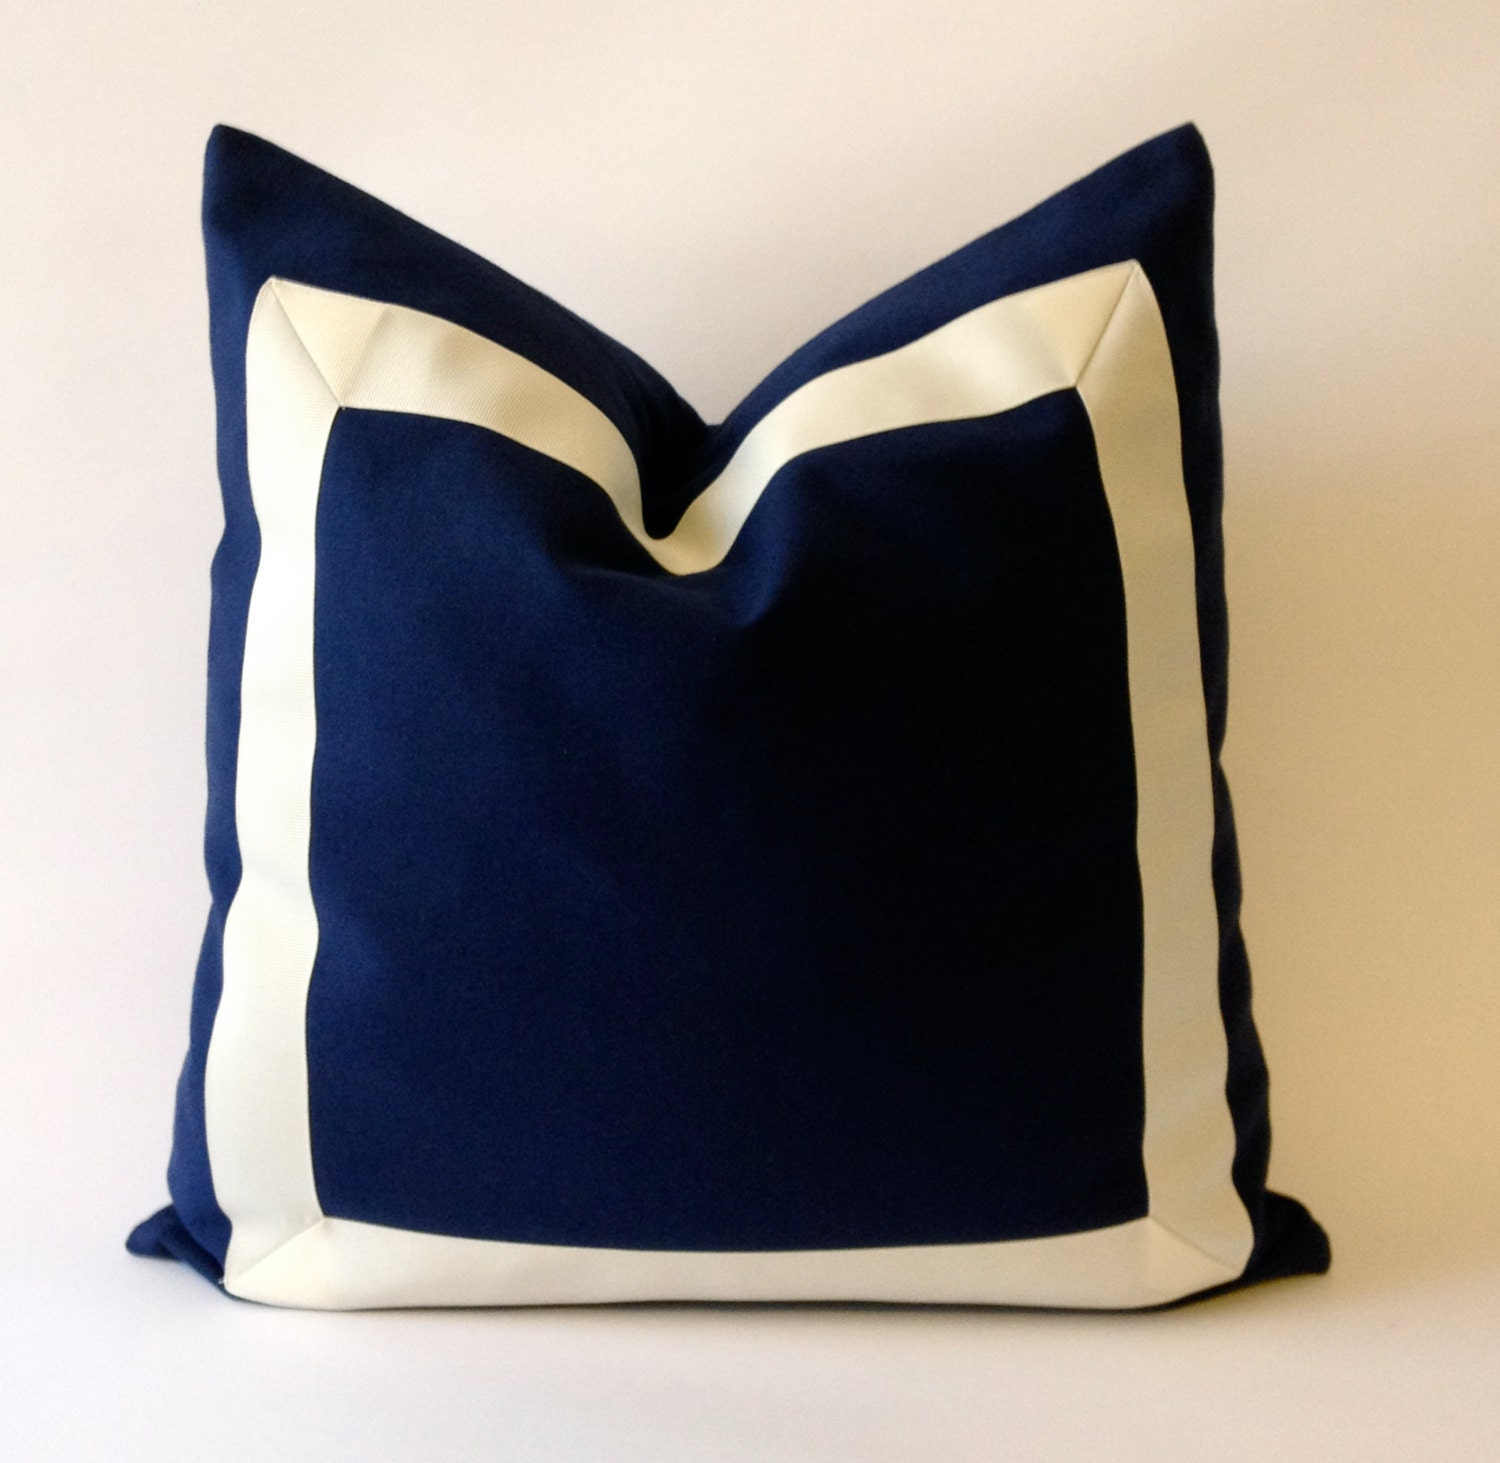 Navy Blue Decorative Pillow Covers : Decorative Throw Pillow Cover in Navy Blue Cotton Canvas